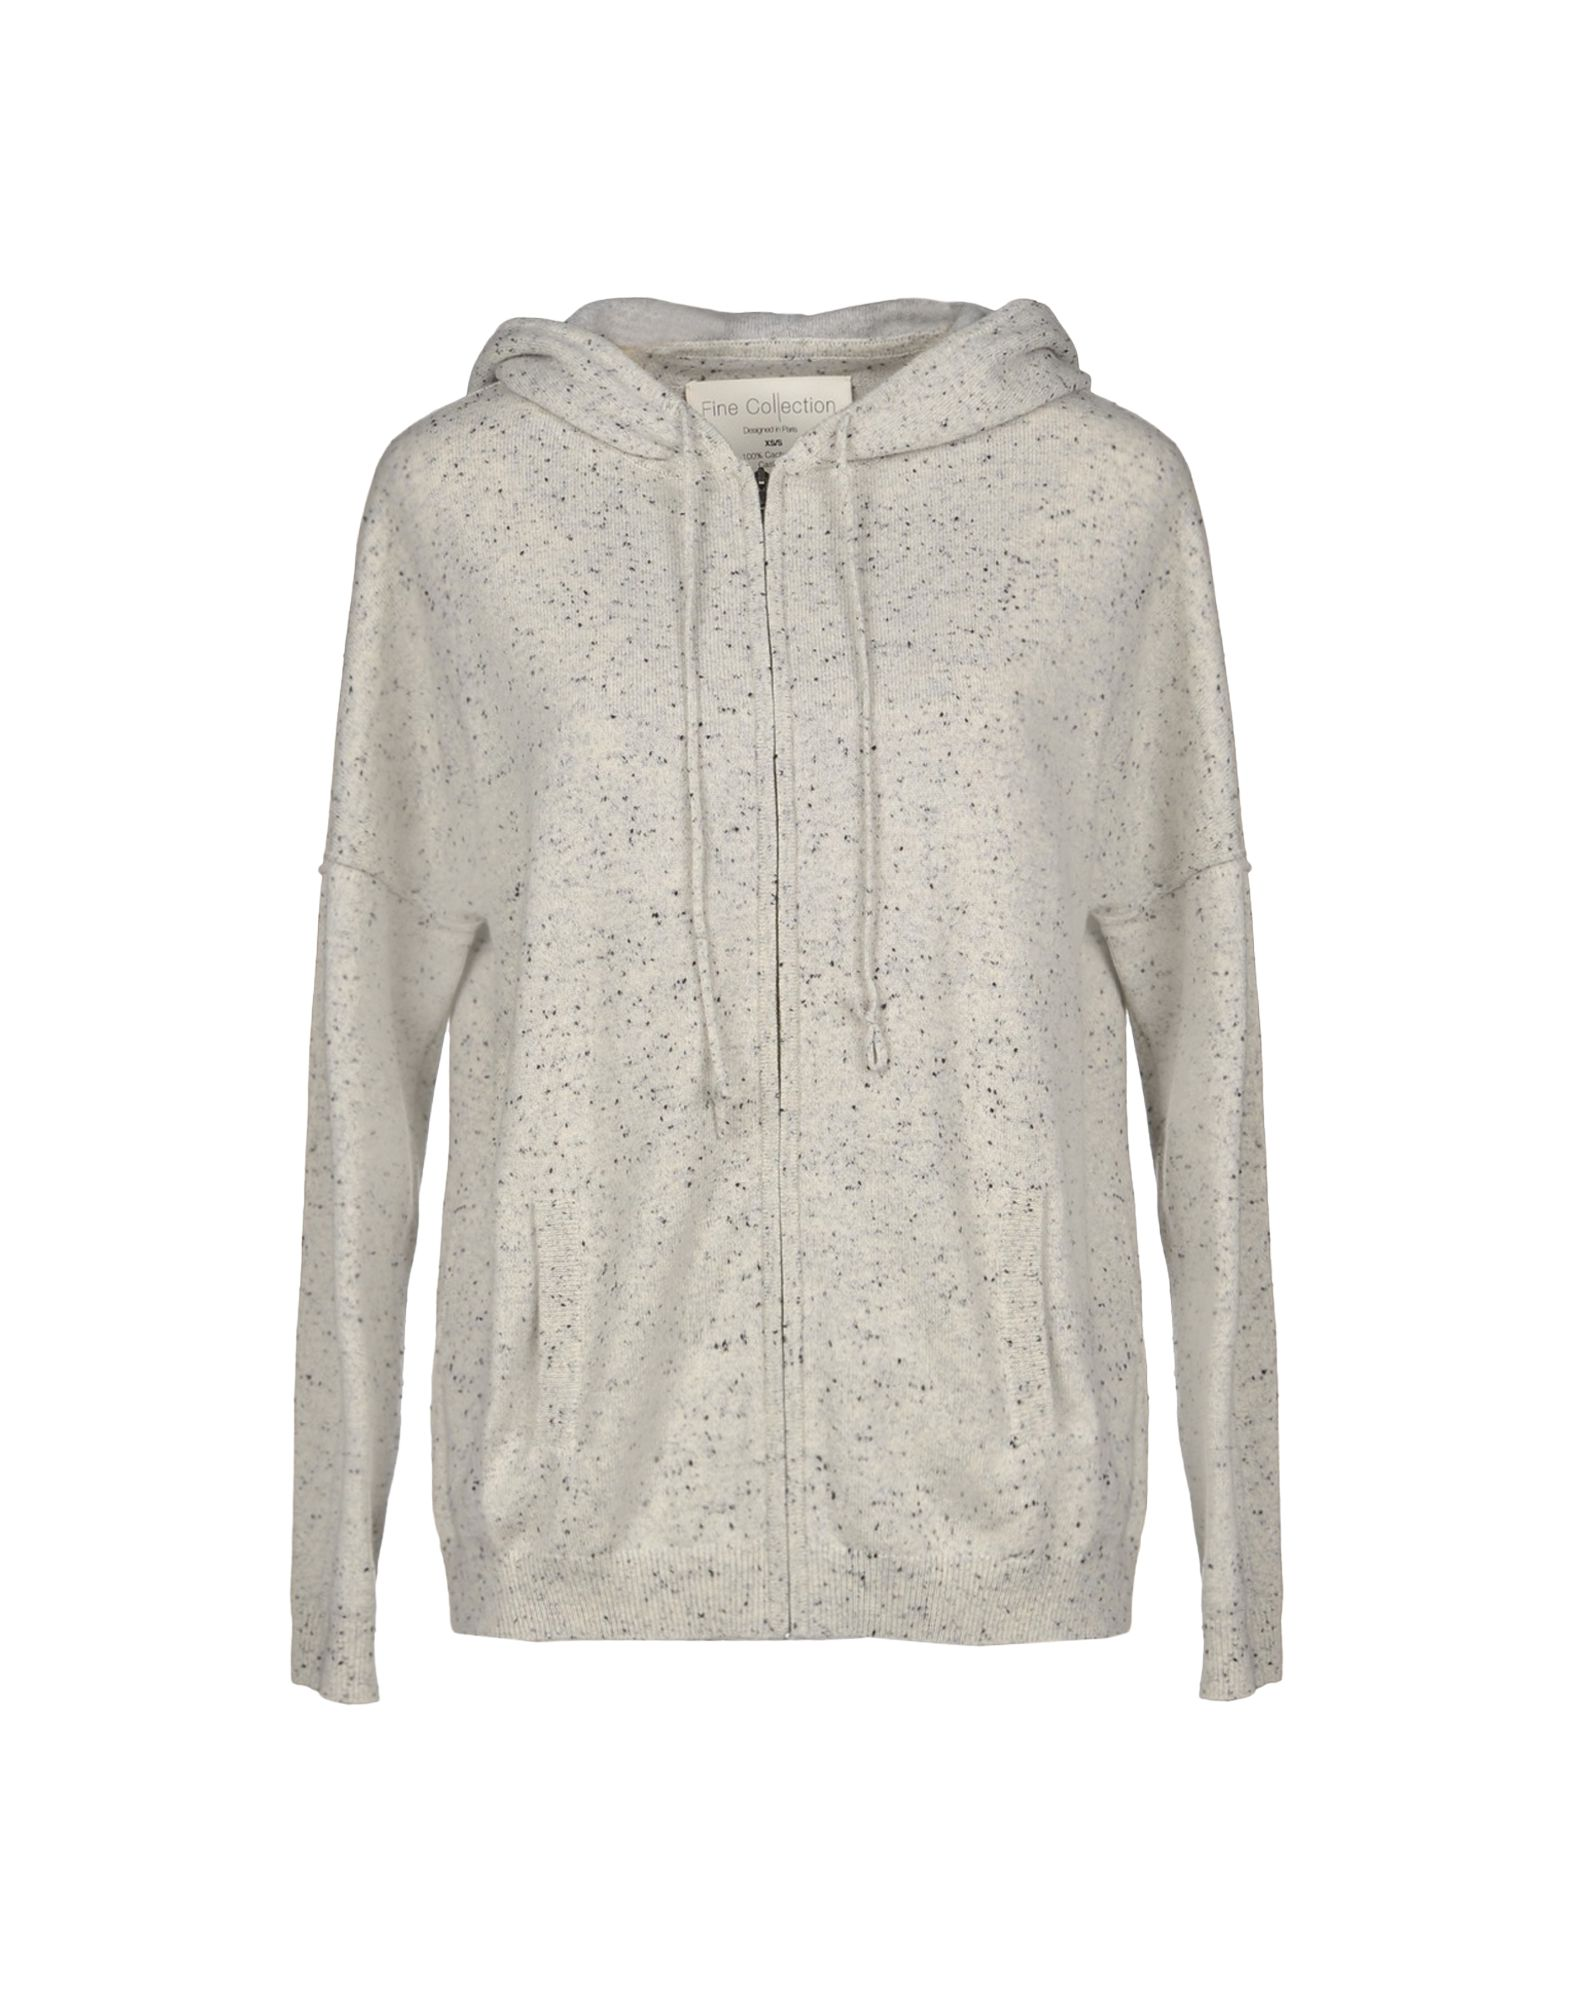 FINE COLLECTION Cardigan in Light Grey